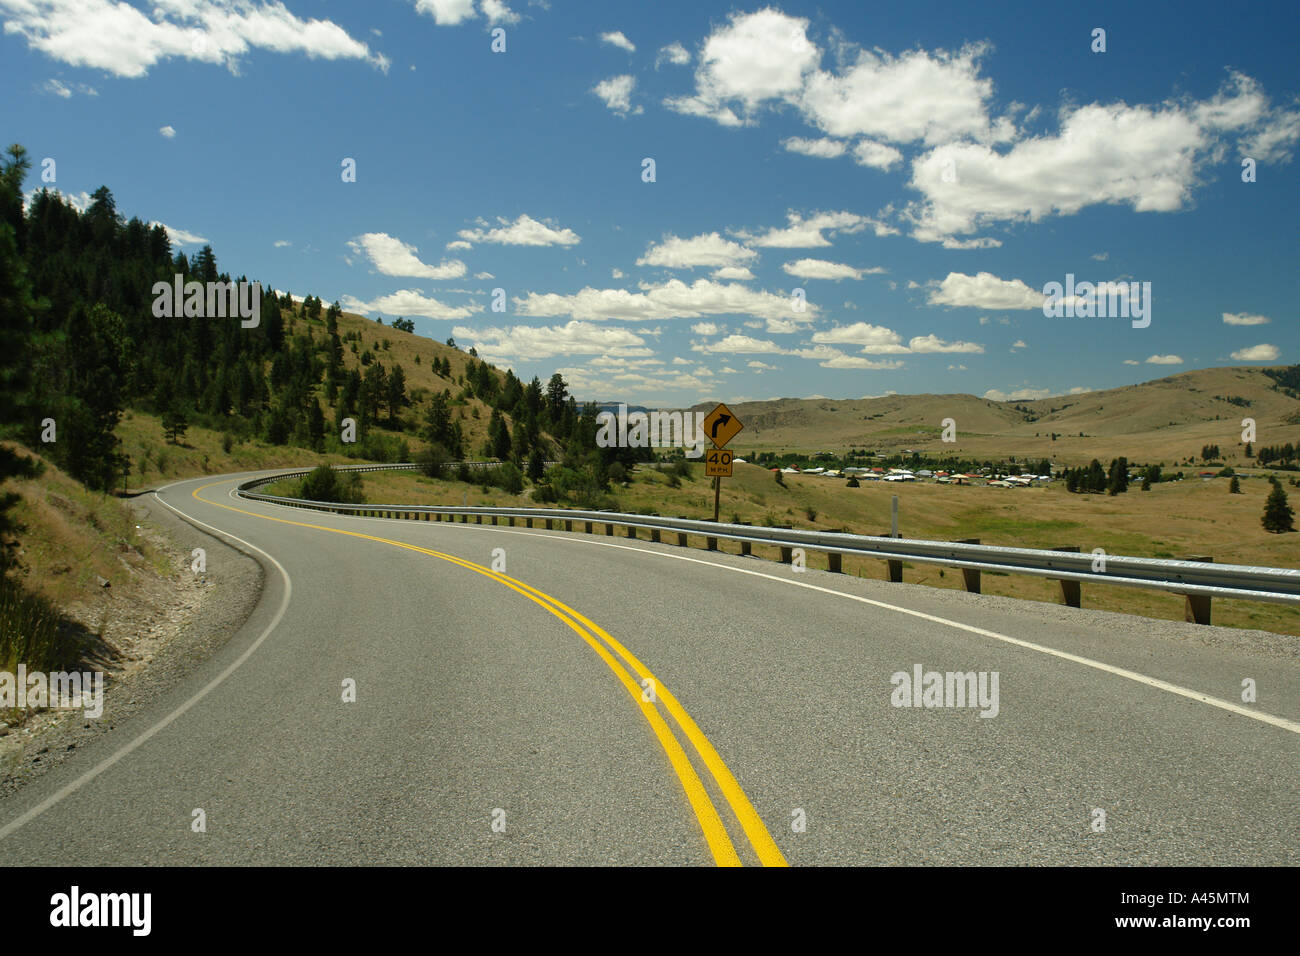 AJD55848, Colville Indian Reservation, WA, Washington, Route 155, Columbia River - Stock Image